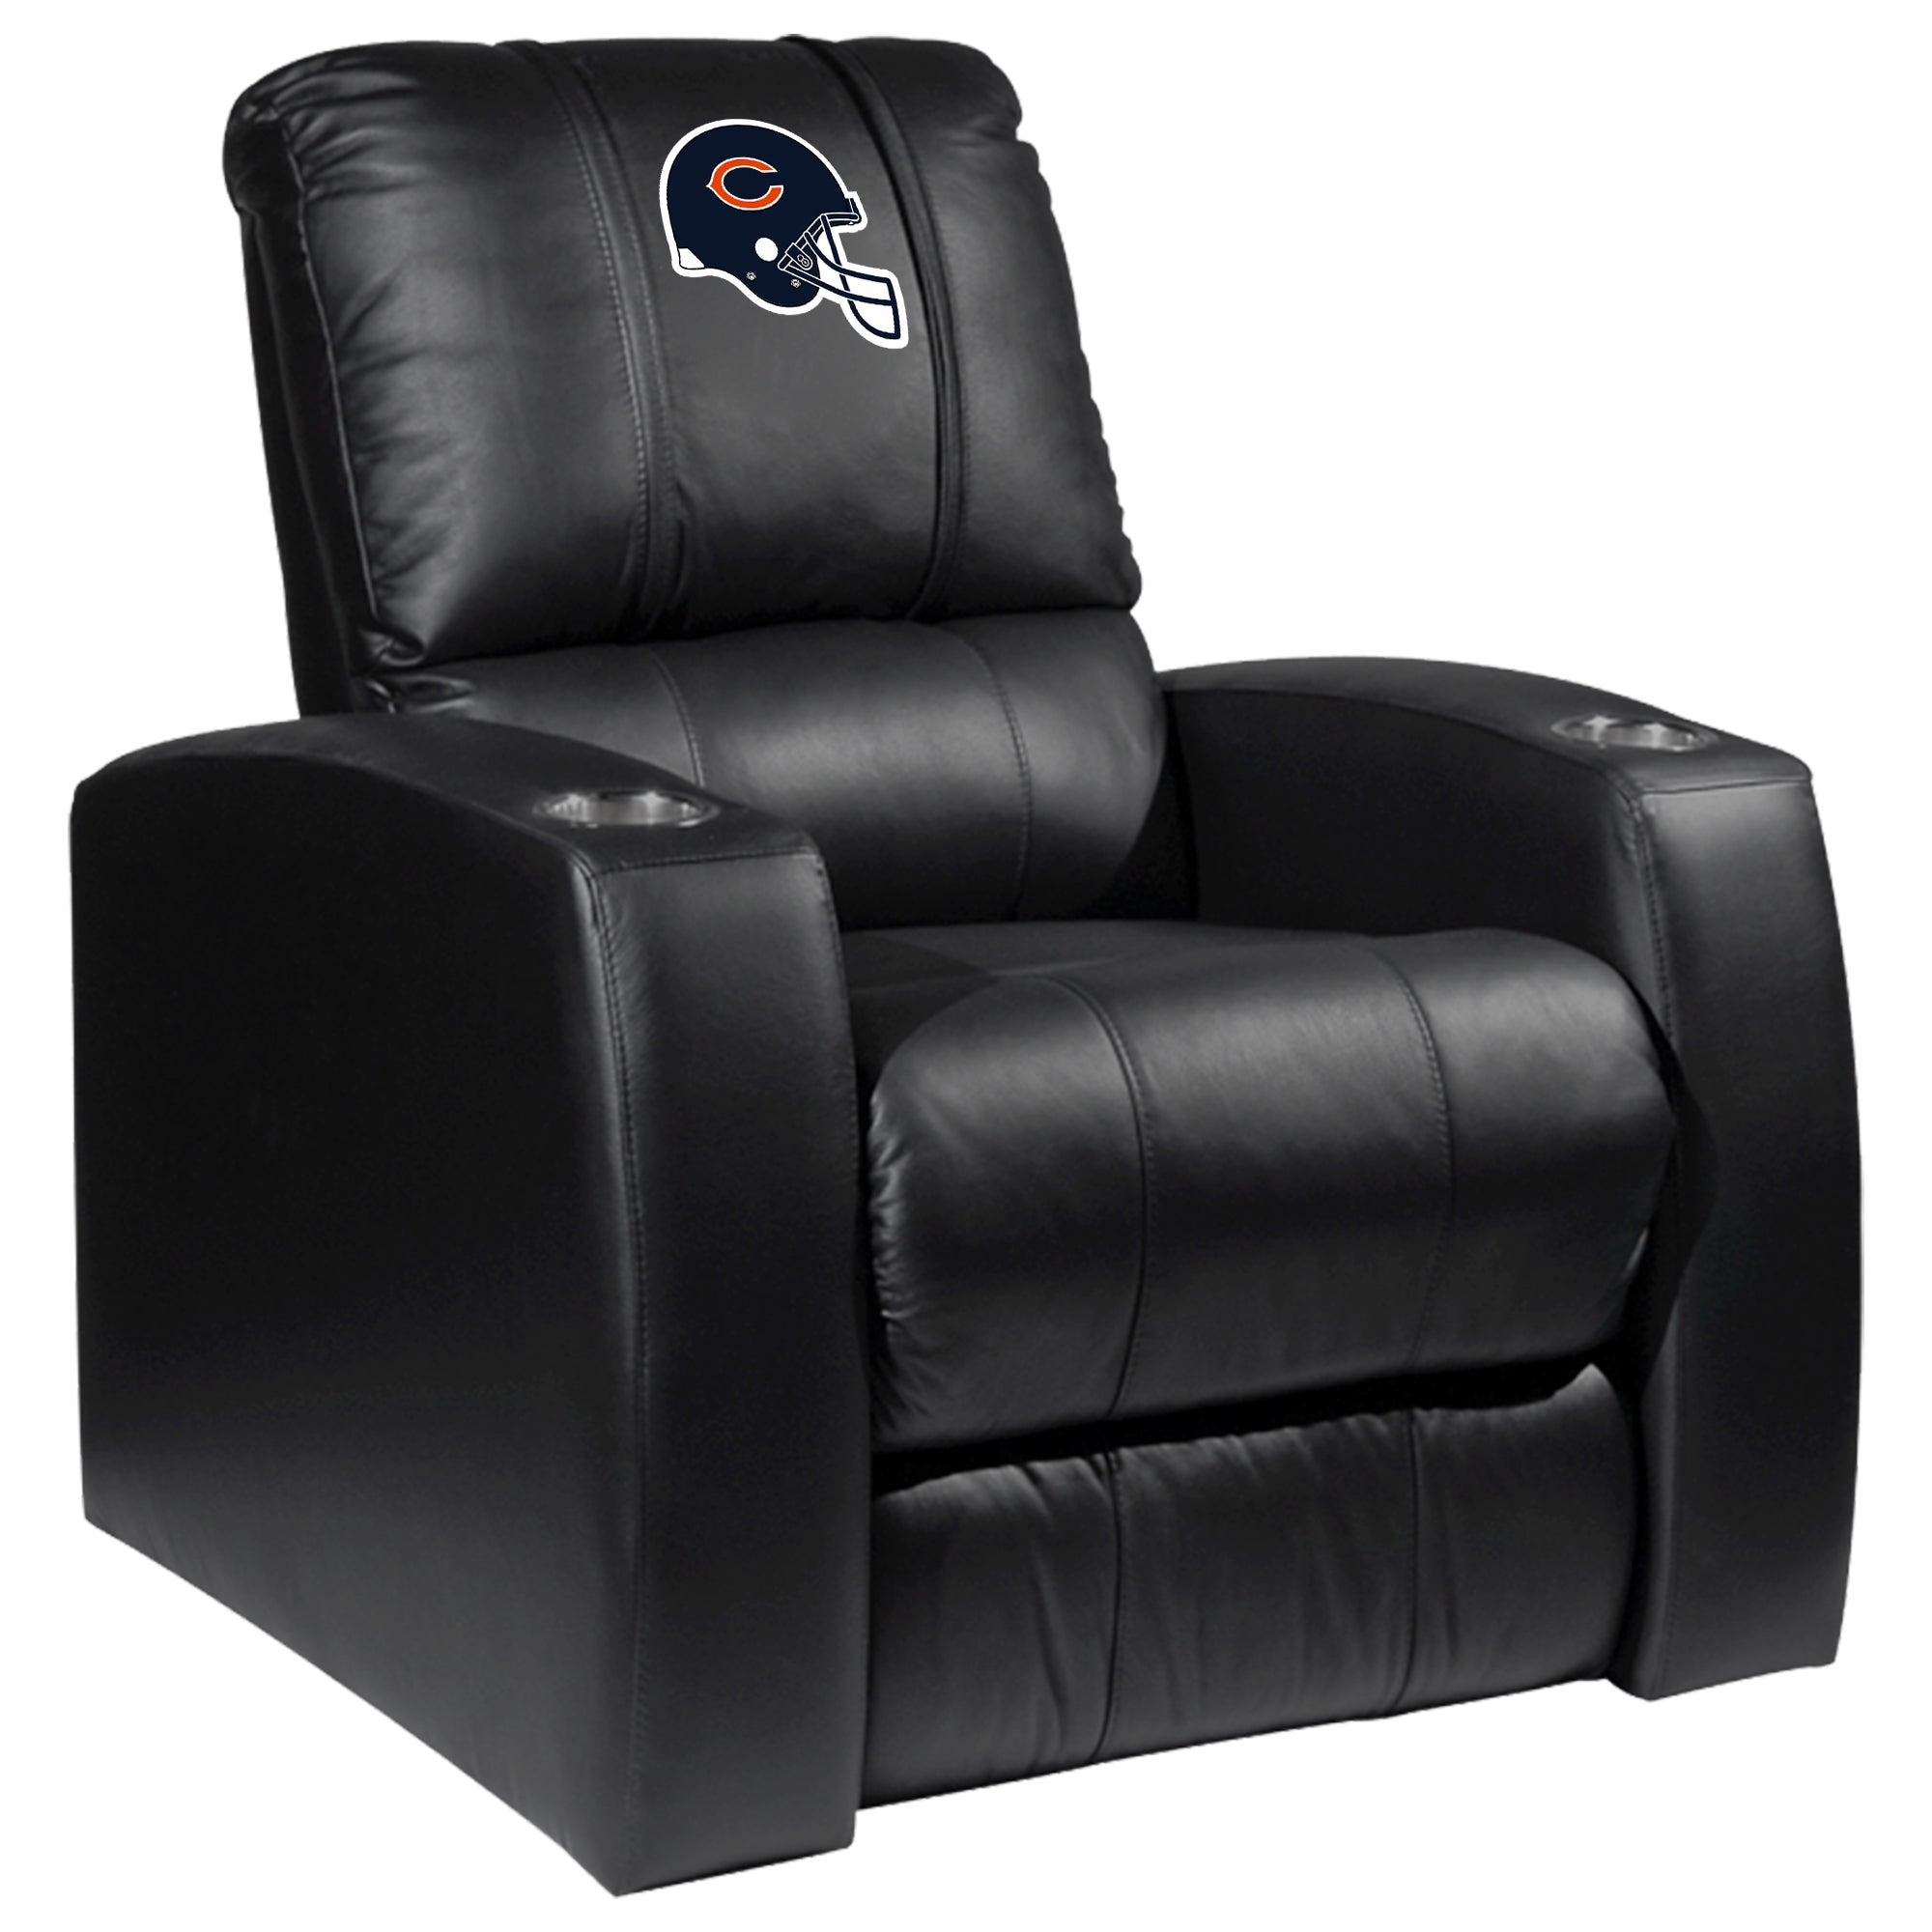 Relax Recliner with  Chicago Bears Helmet Logo